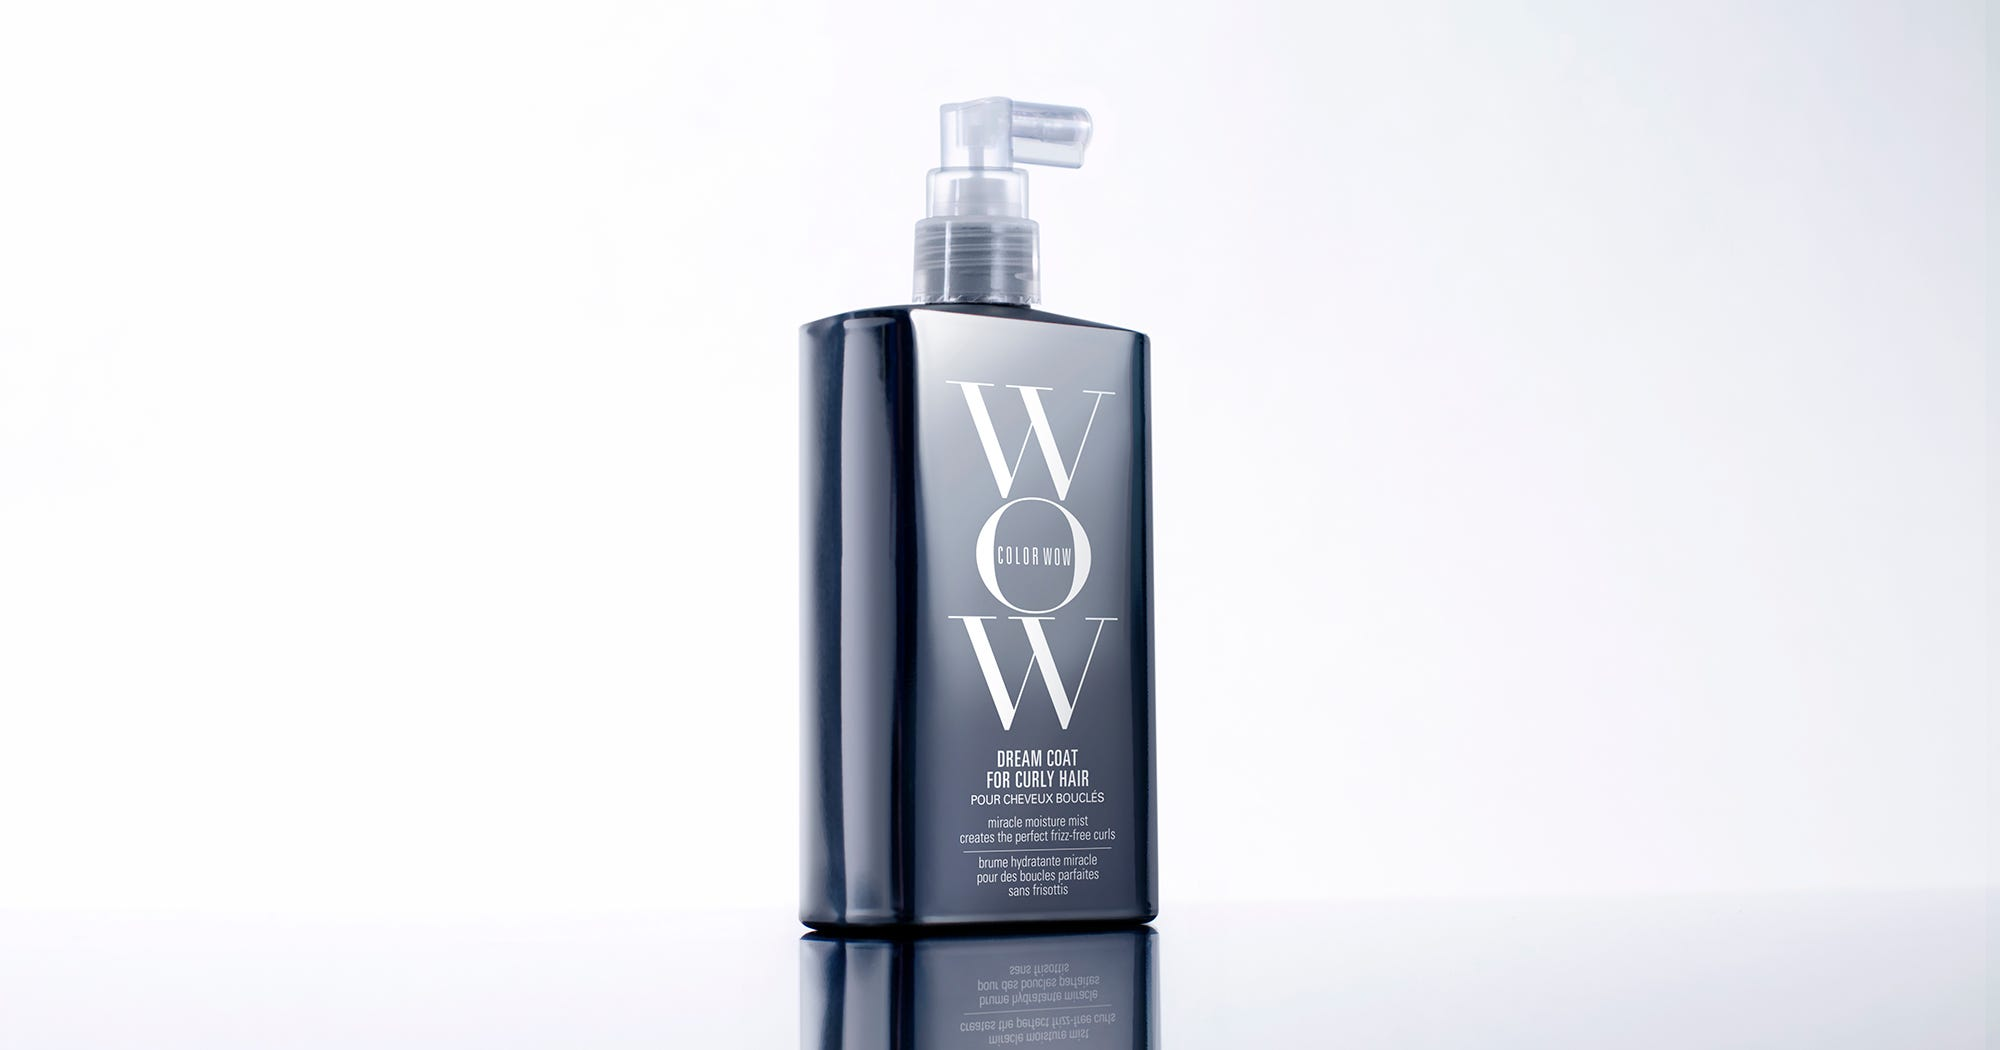 Color Wow Dream Coat Curly Hair Review